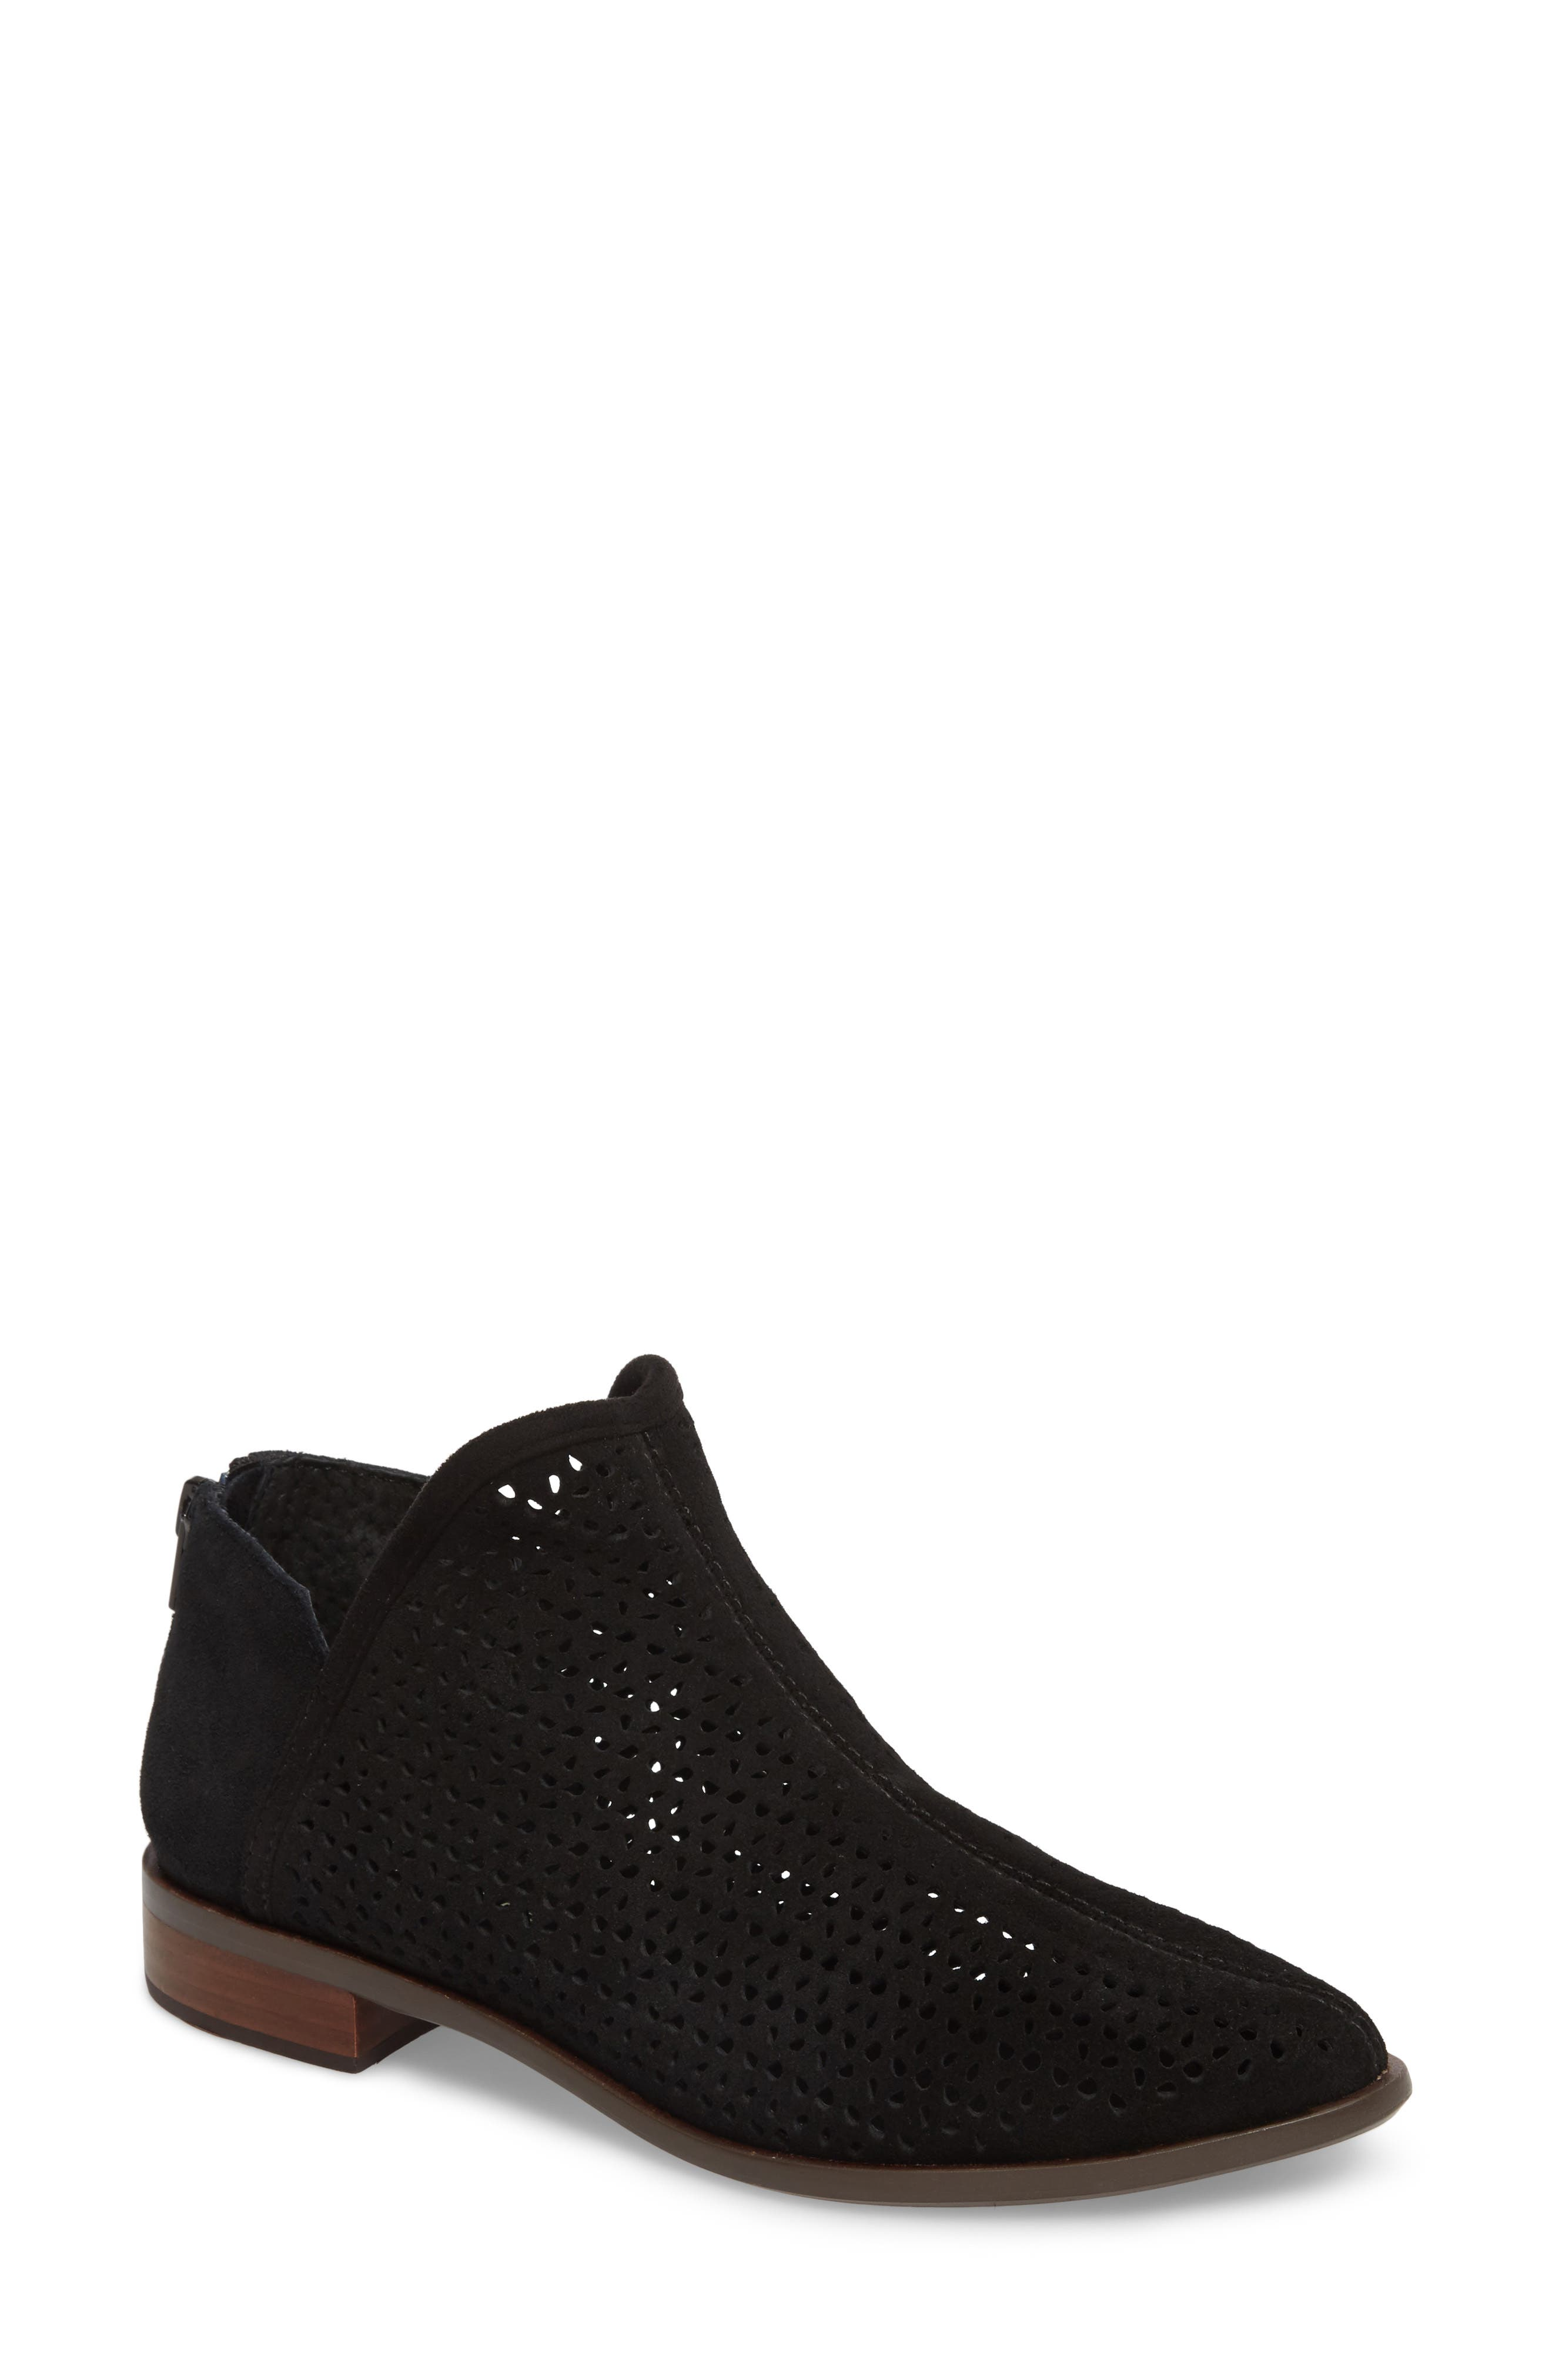 Alley Perforated Bootie,                         Main,                         color, 001